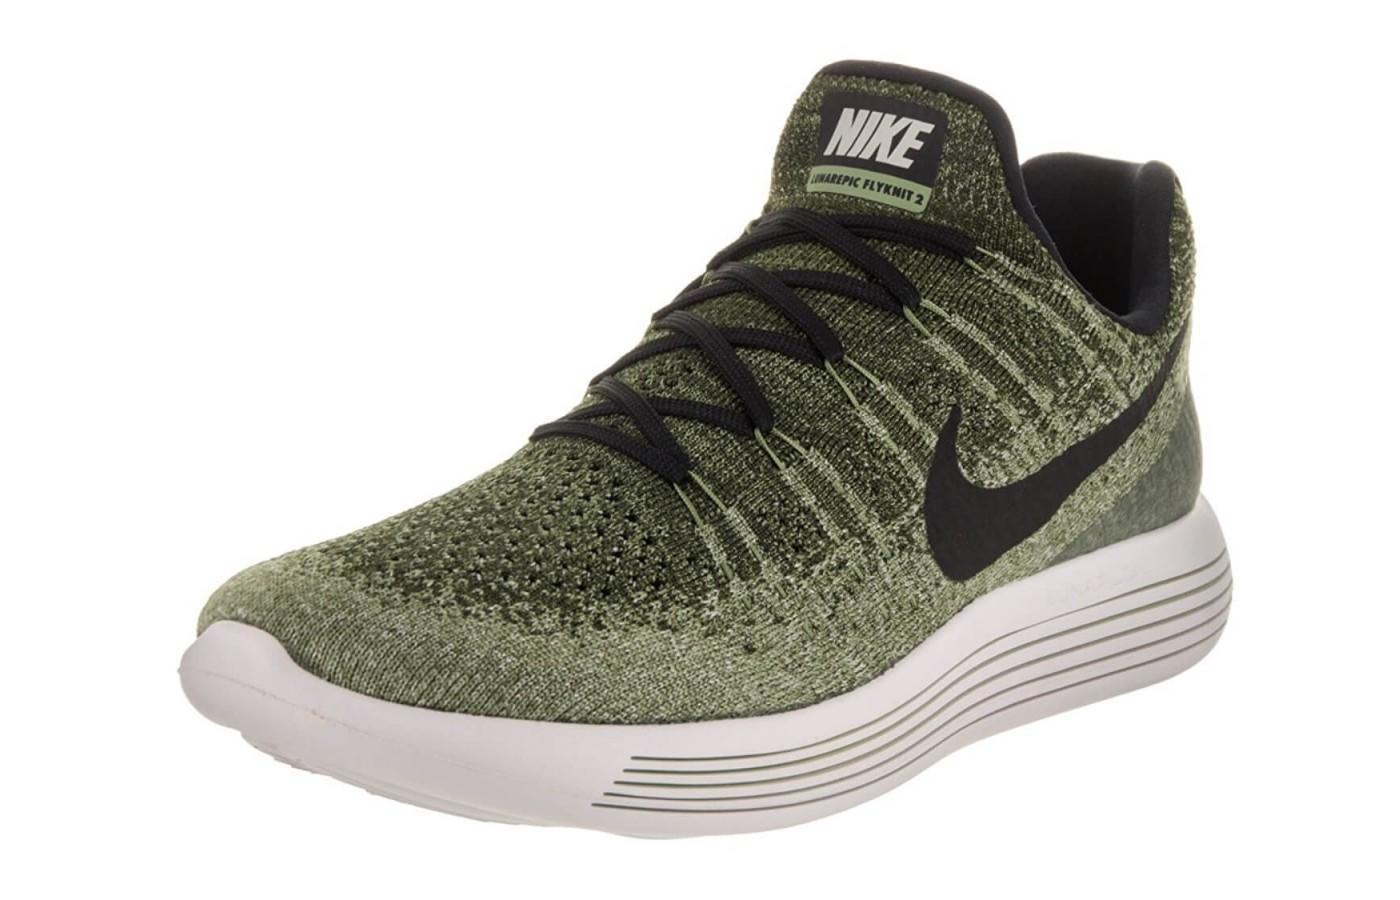 outlet store 14b7f eb589 Nike LunarEpic Low Flyknit 2